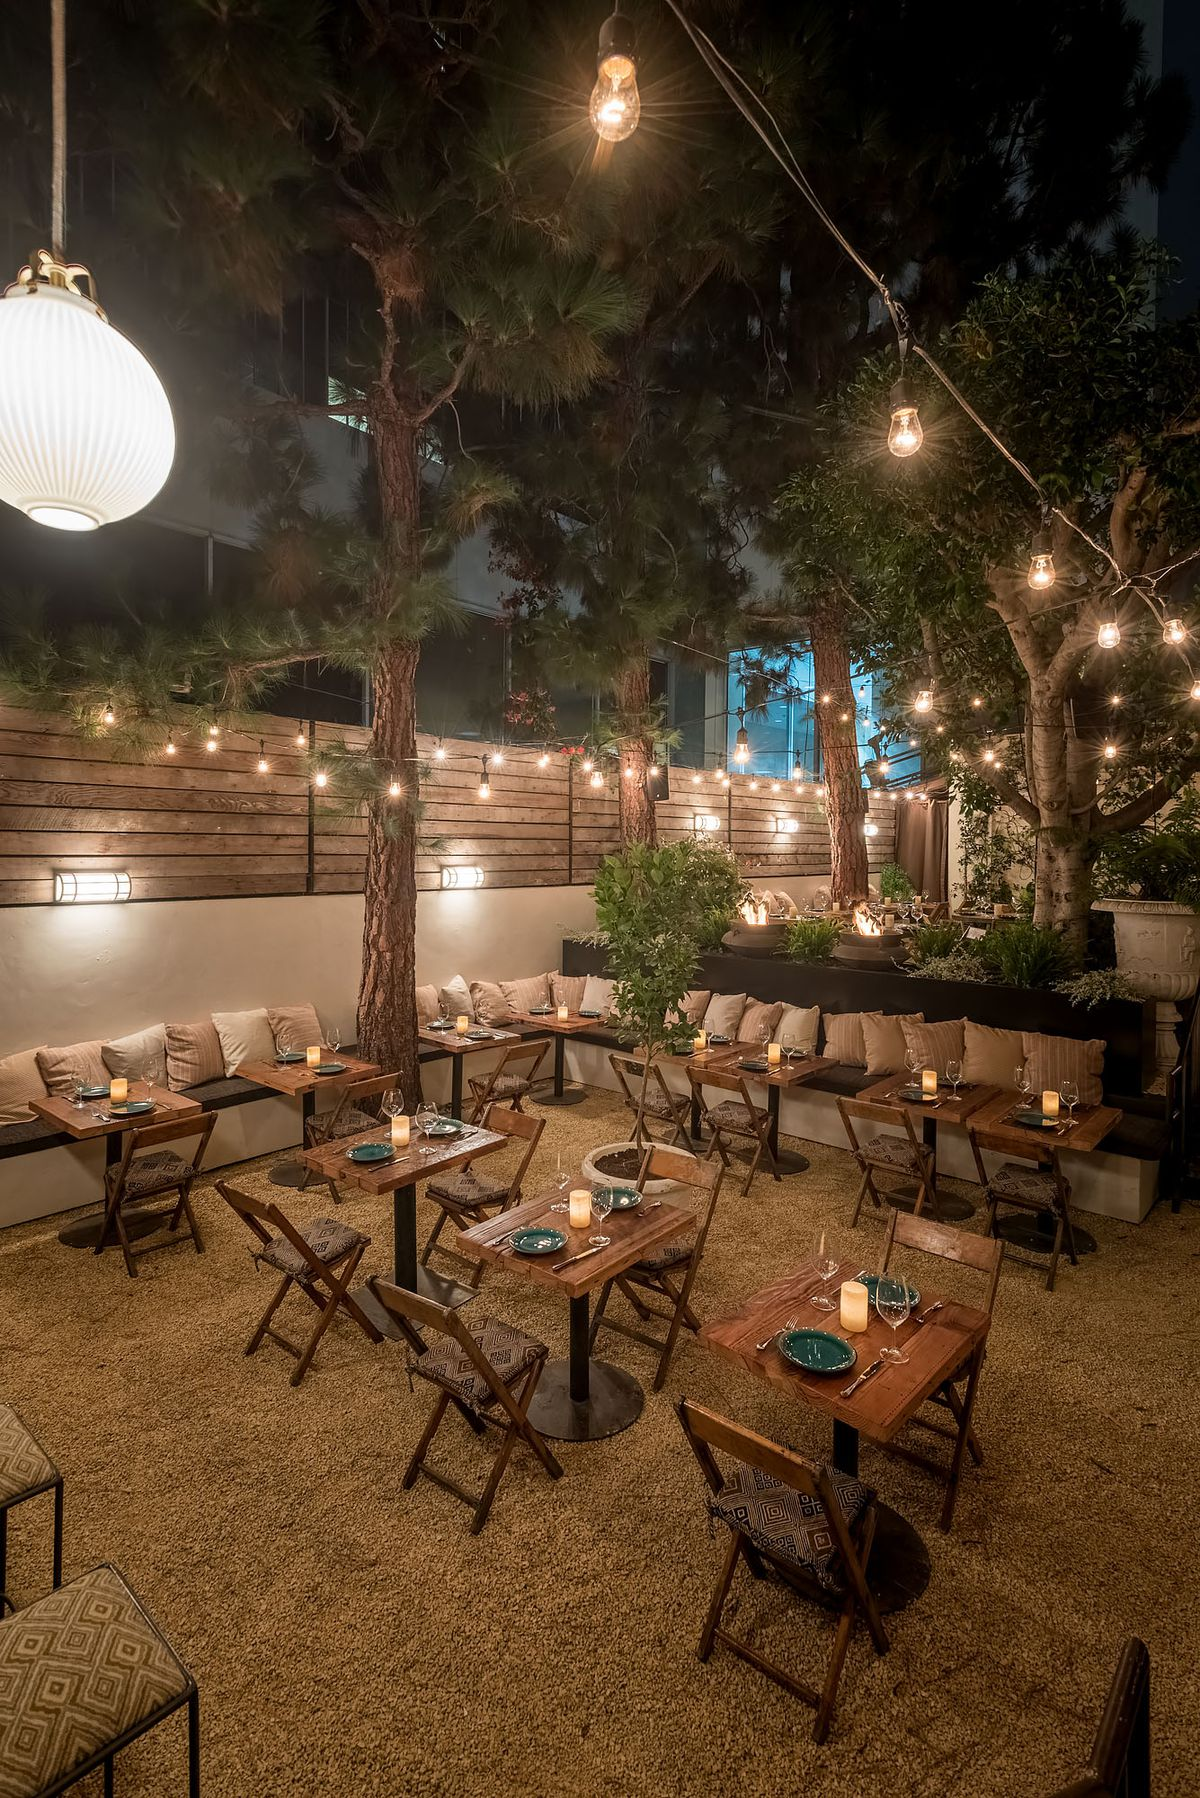 A tall shot of tables under a big tree out on a dinner patio at night.